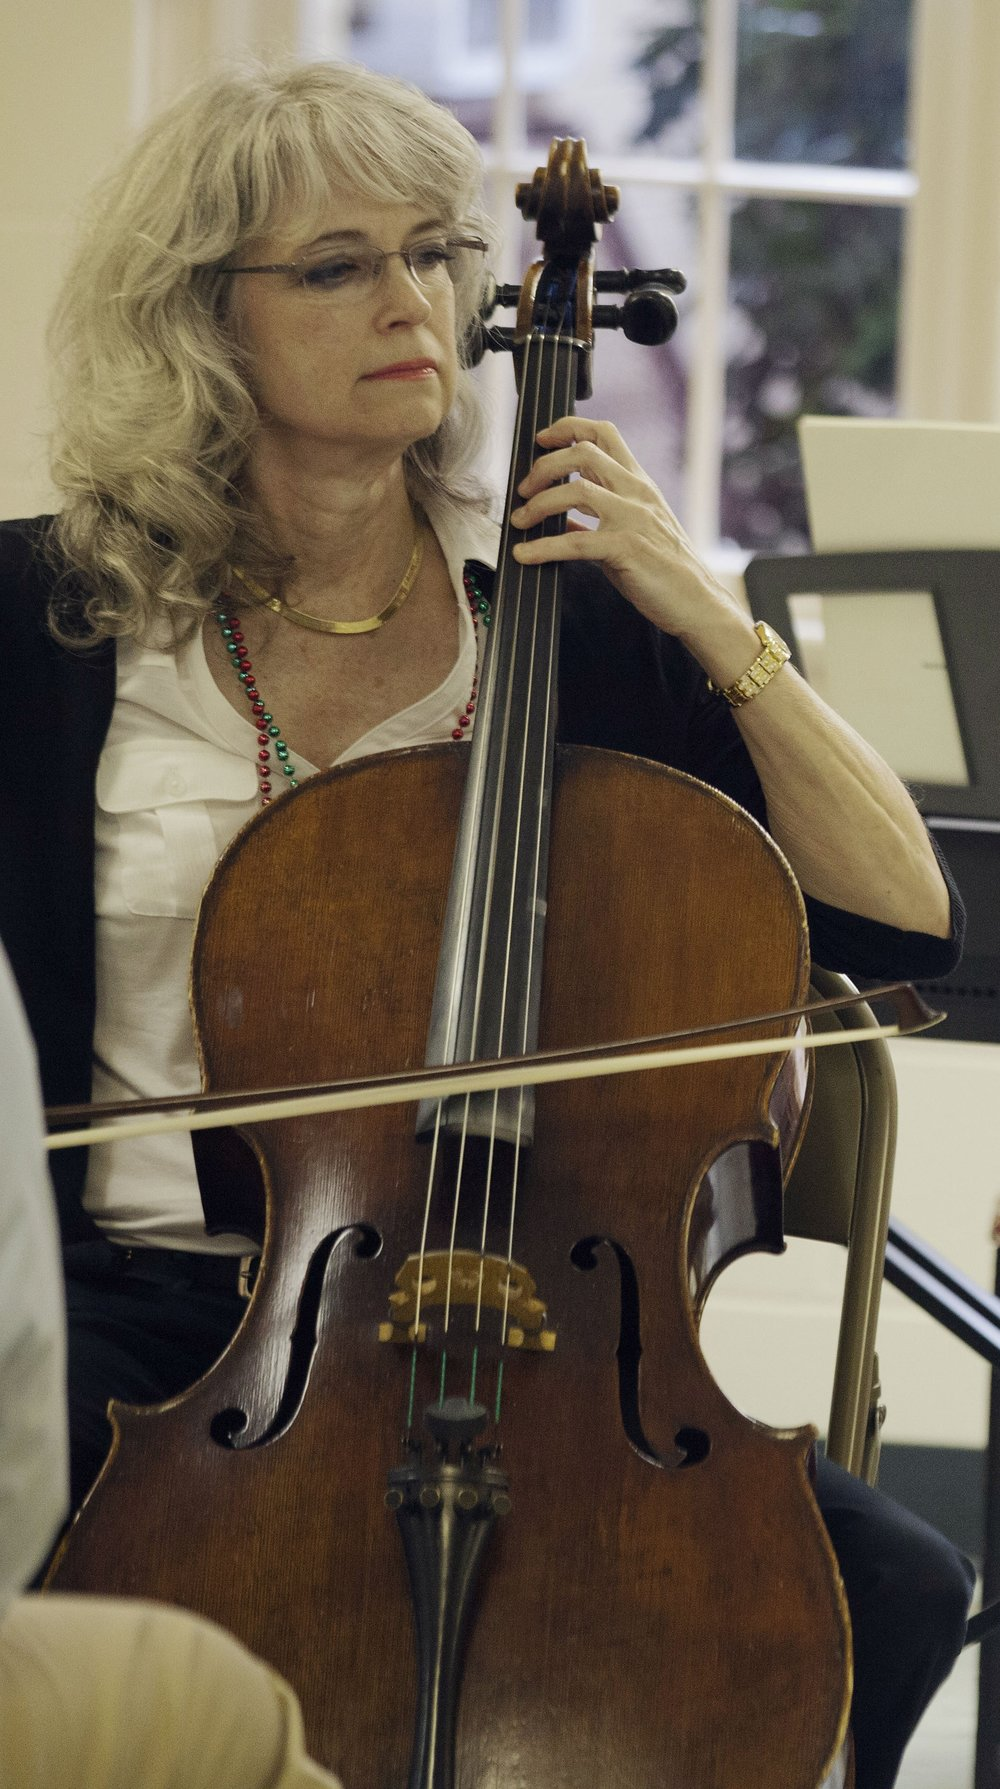 Kimberly Rooker,  Instructor - cello, vioin, piano